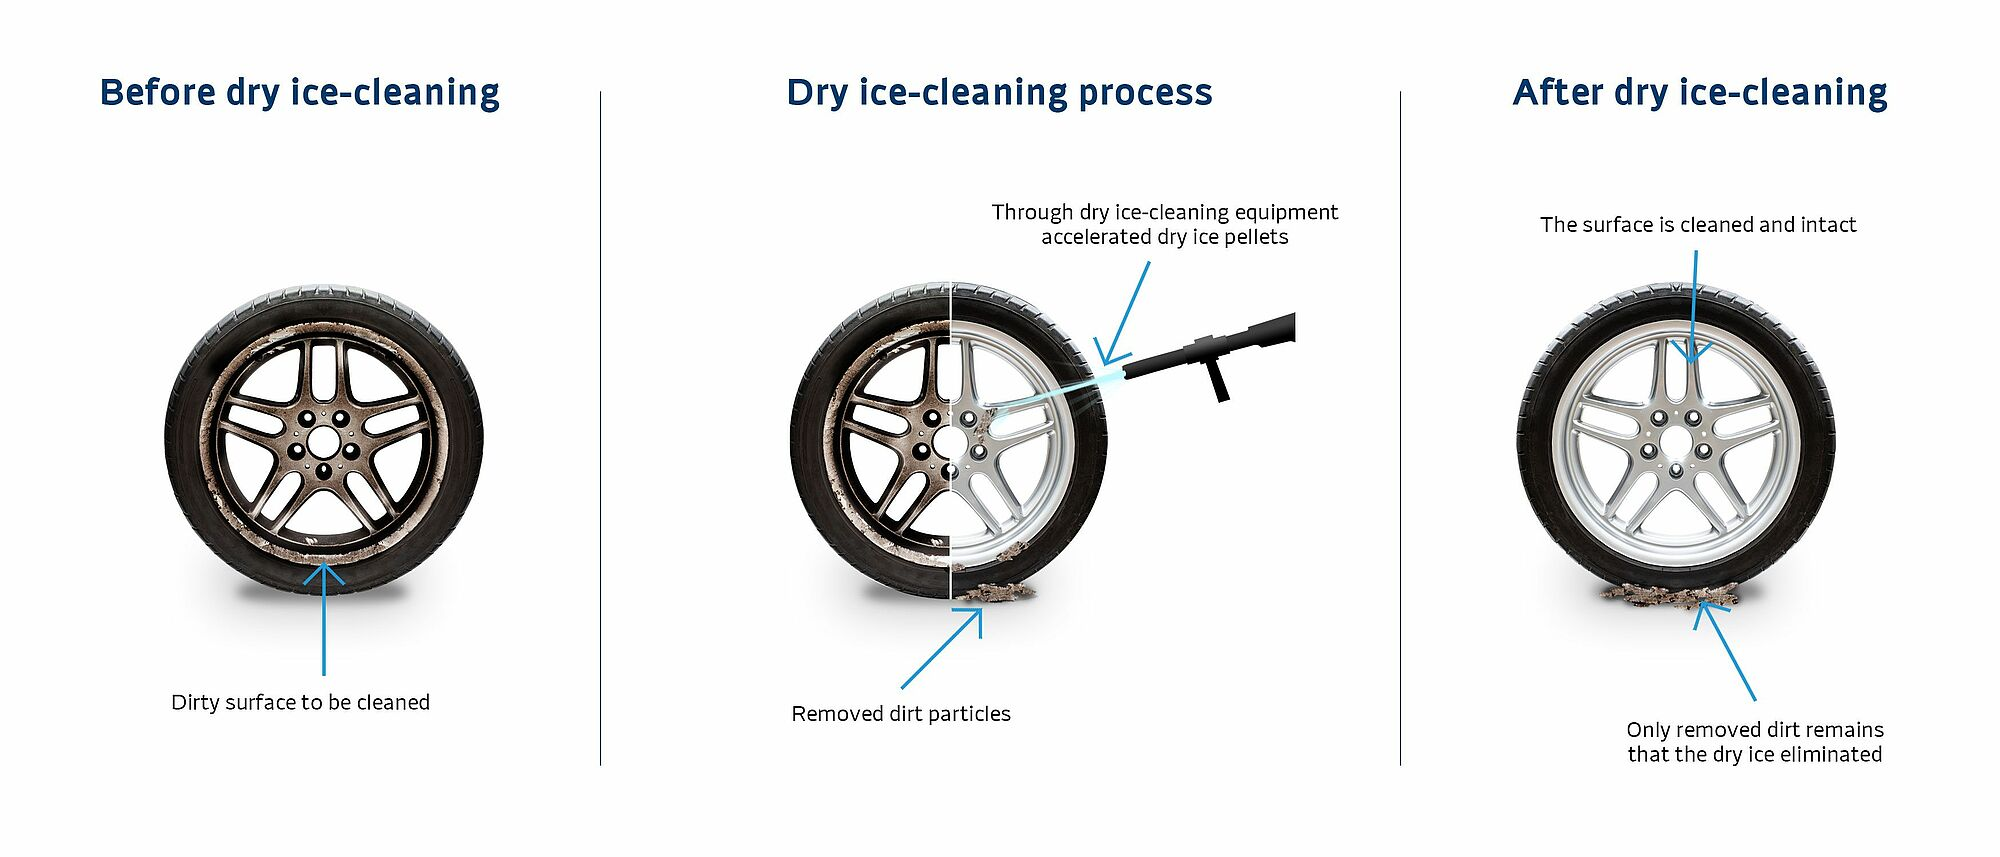 Three tires showing the dry ice-cleaning process